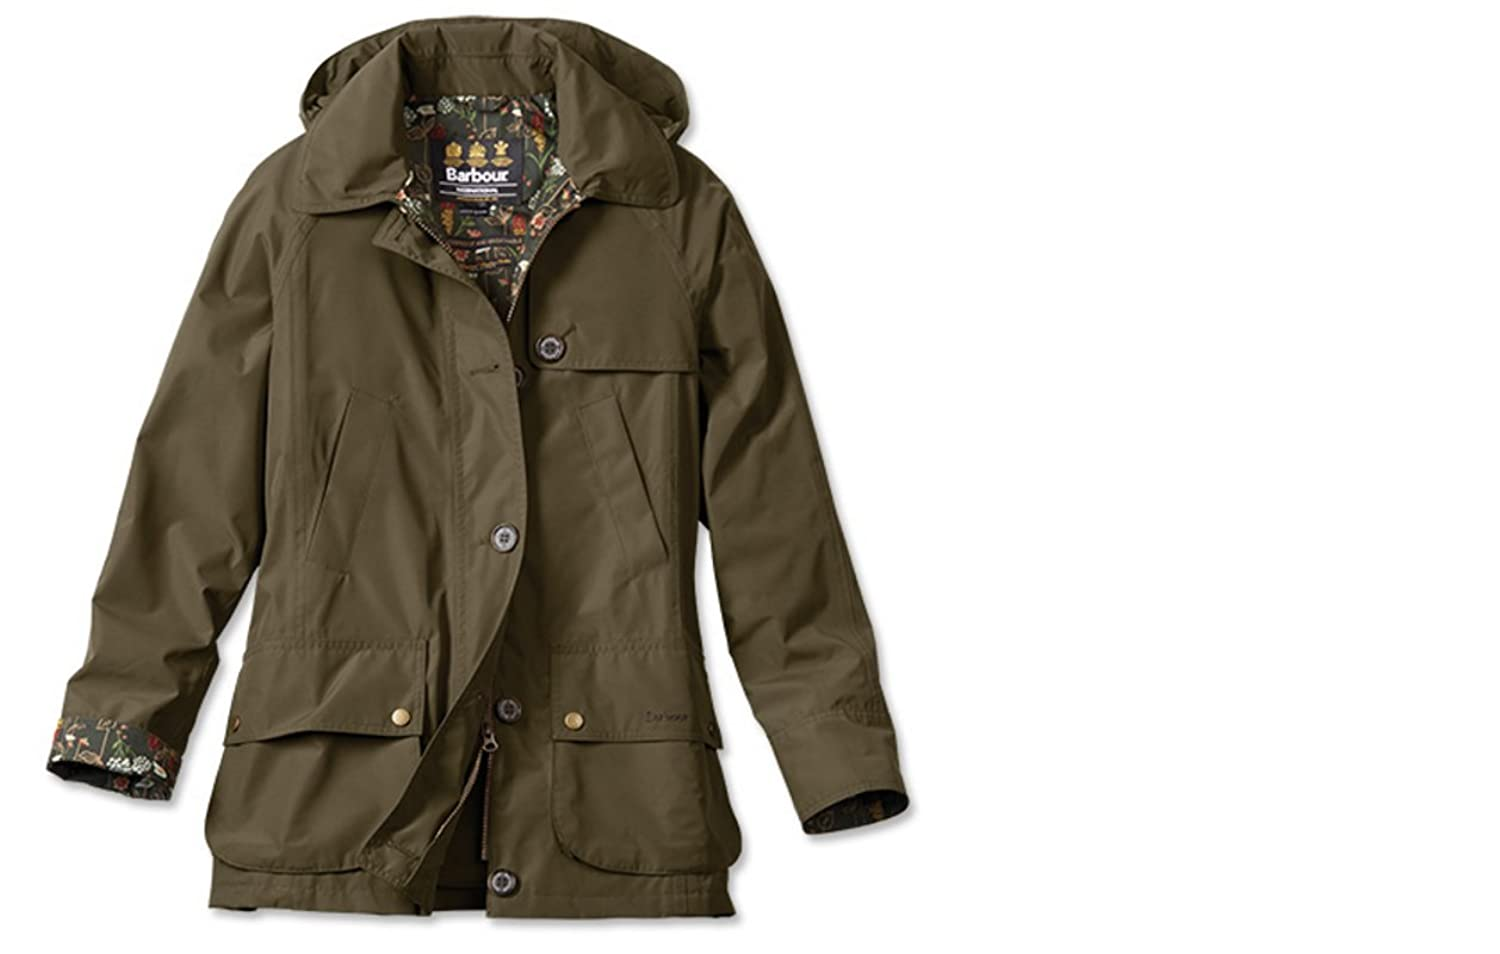 Womens barbour jacket with floral lining